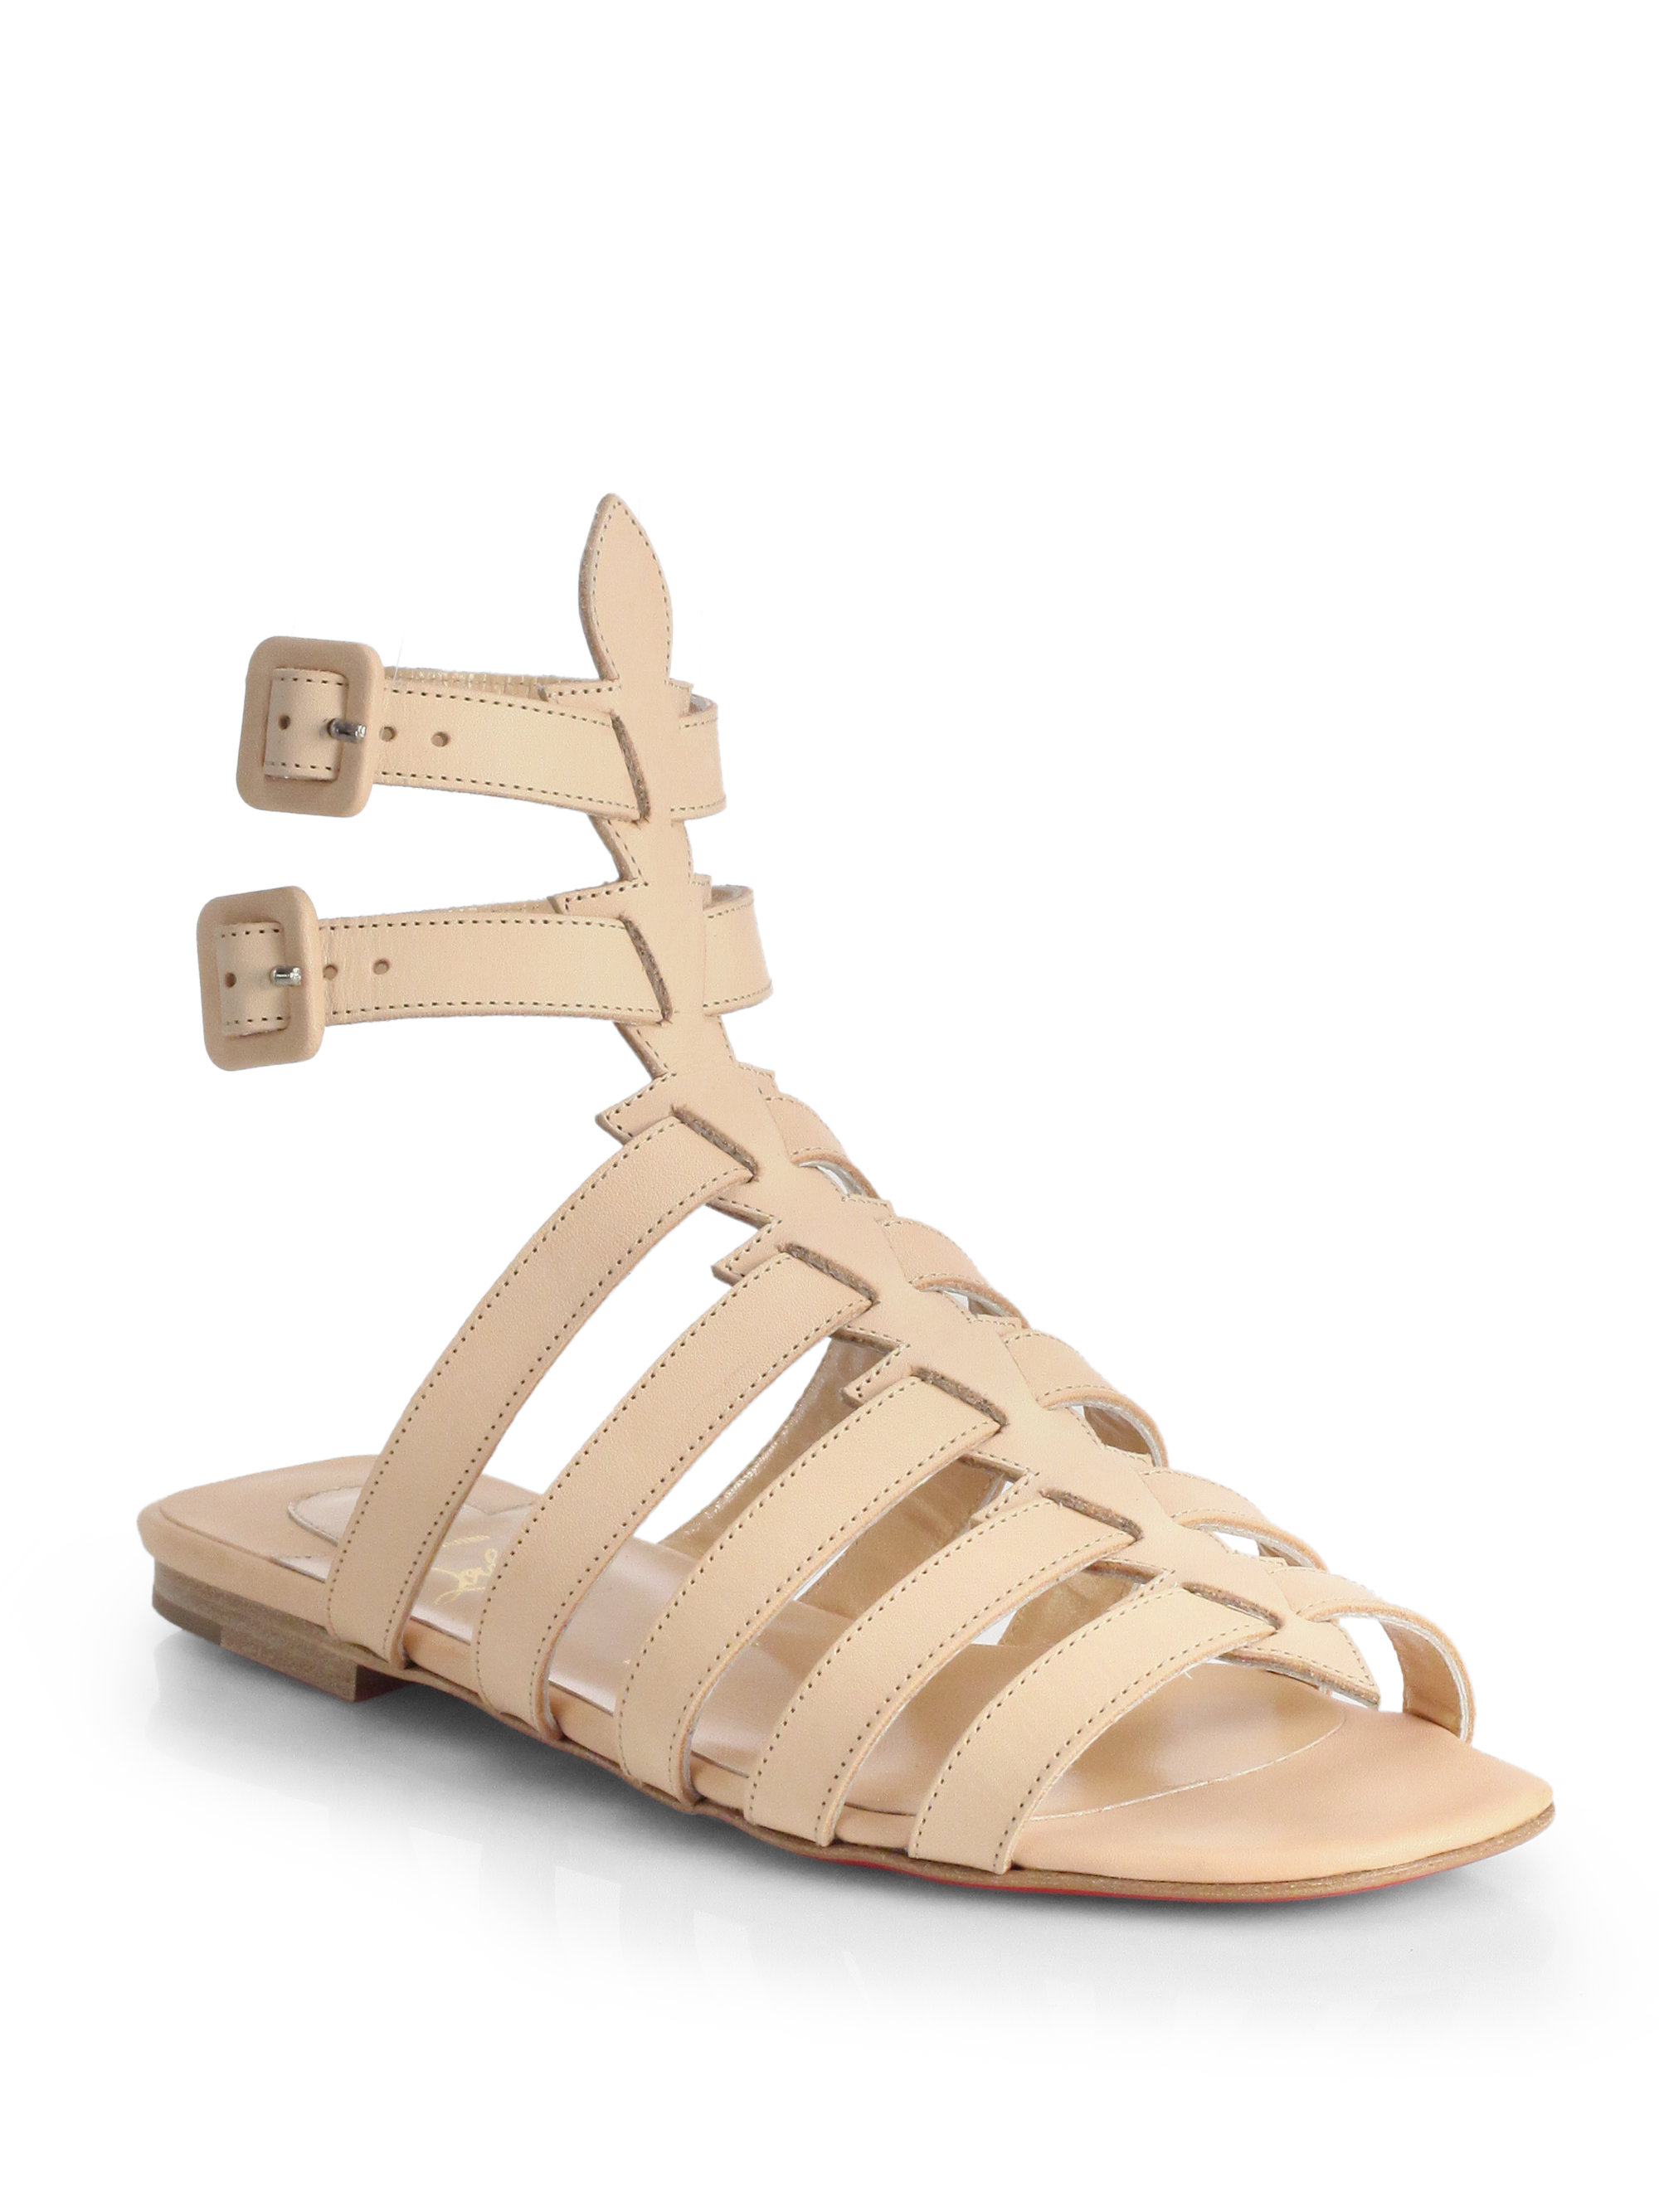 0b291dc7b6ea Lyst - Christian Louboutin Neronna Leather Gladiator Sandals in Natural